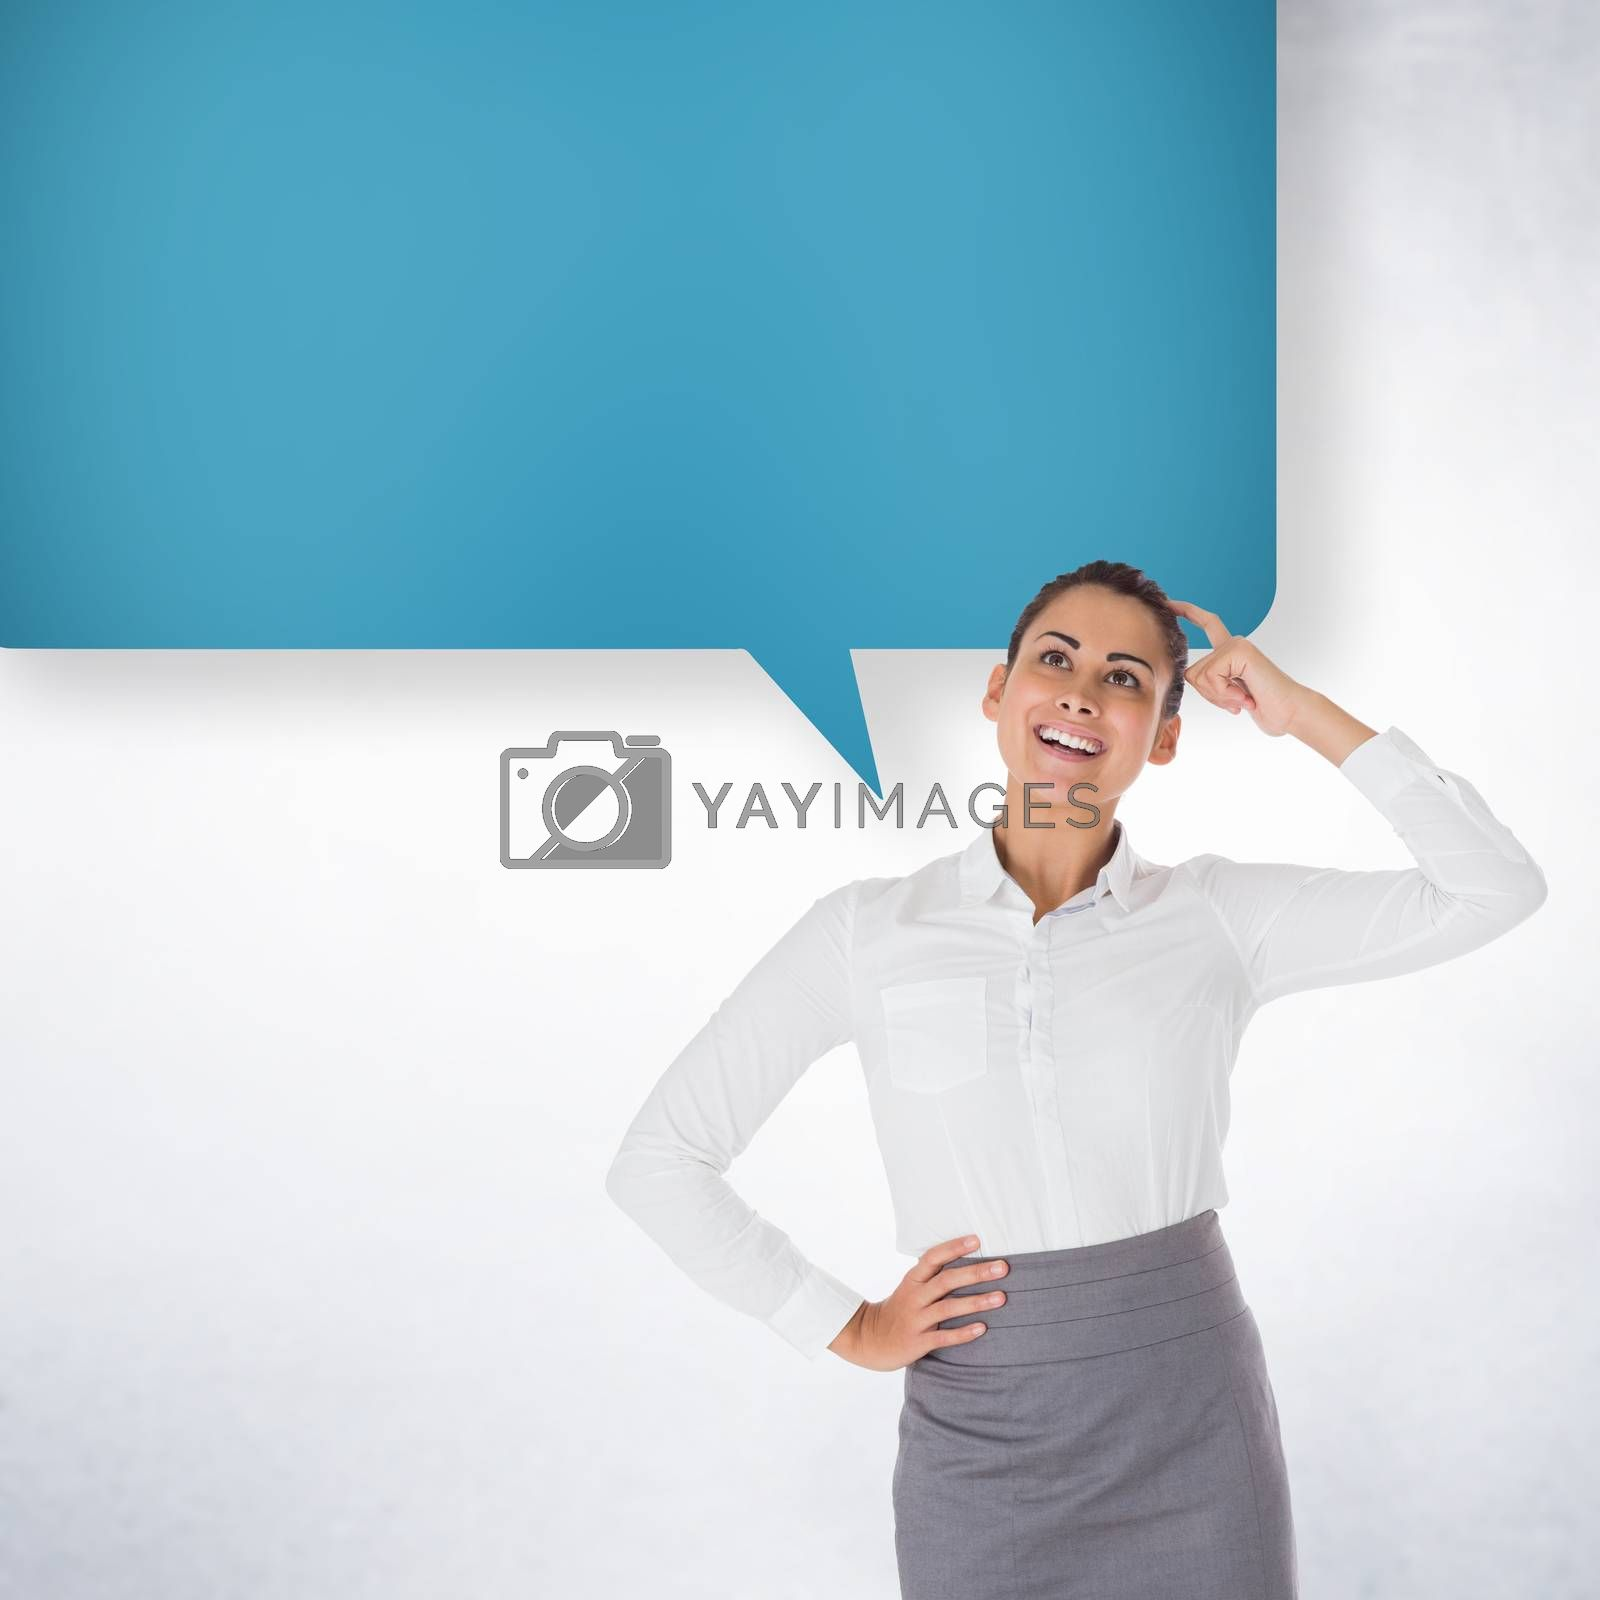 Smiling thoughtful businesswoman with speech bubble against white wall